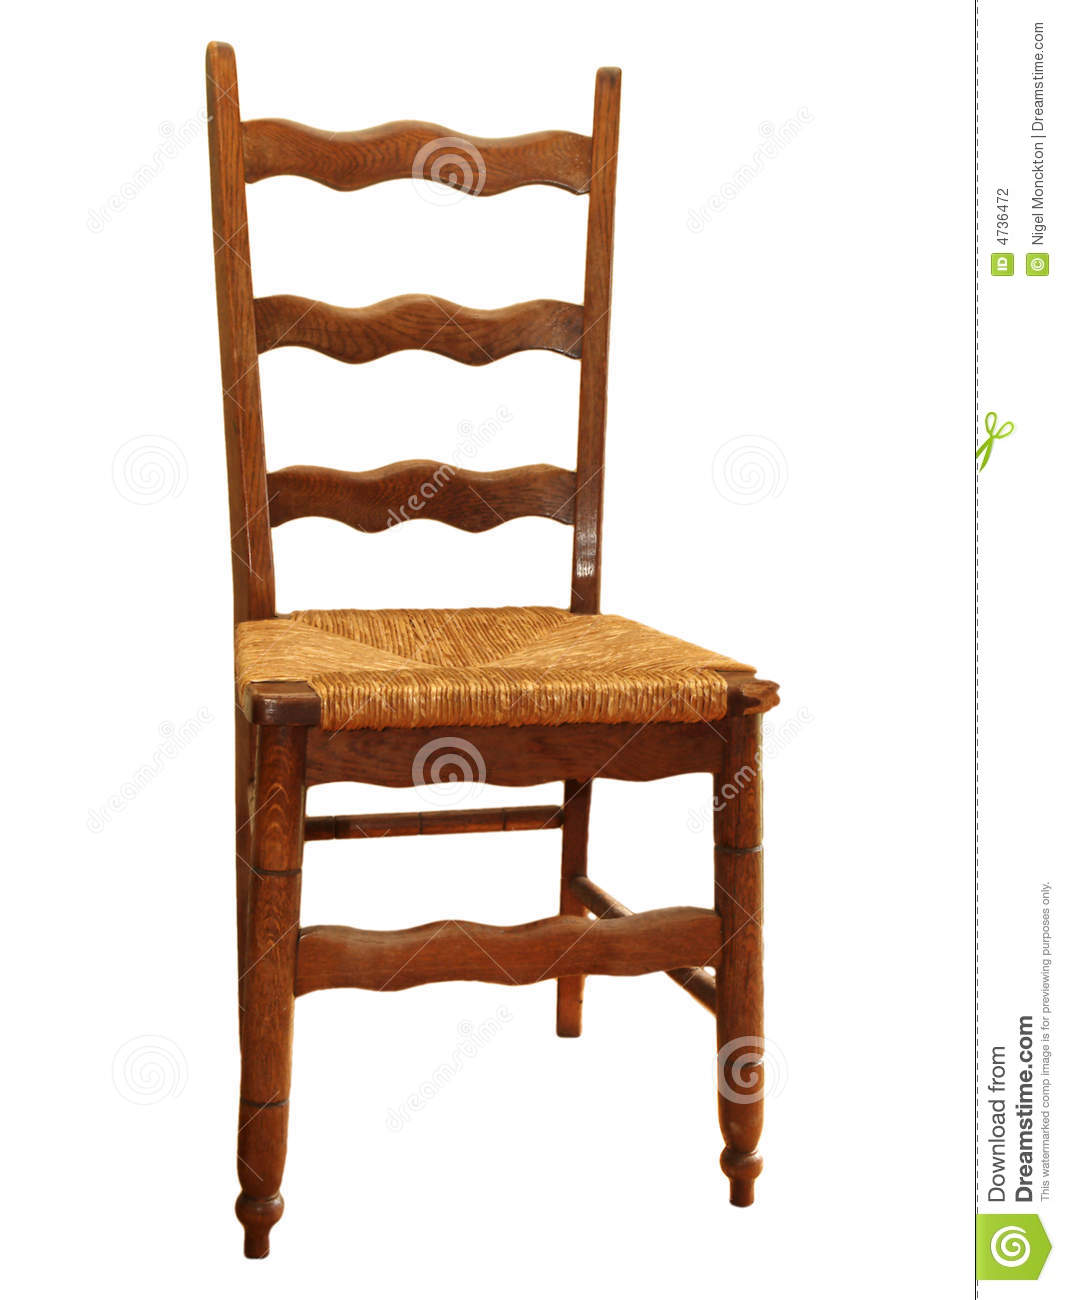 antique wooden chairs pictures chair leg accessories kitchen stock photo image of backrest